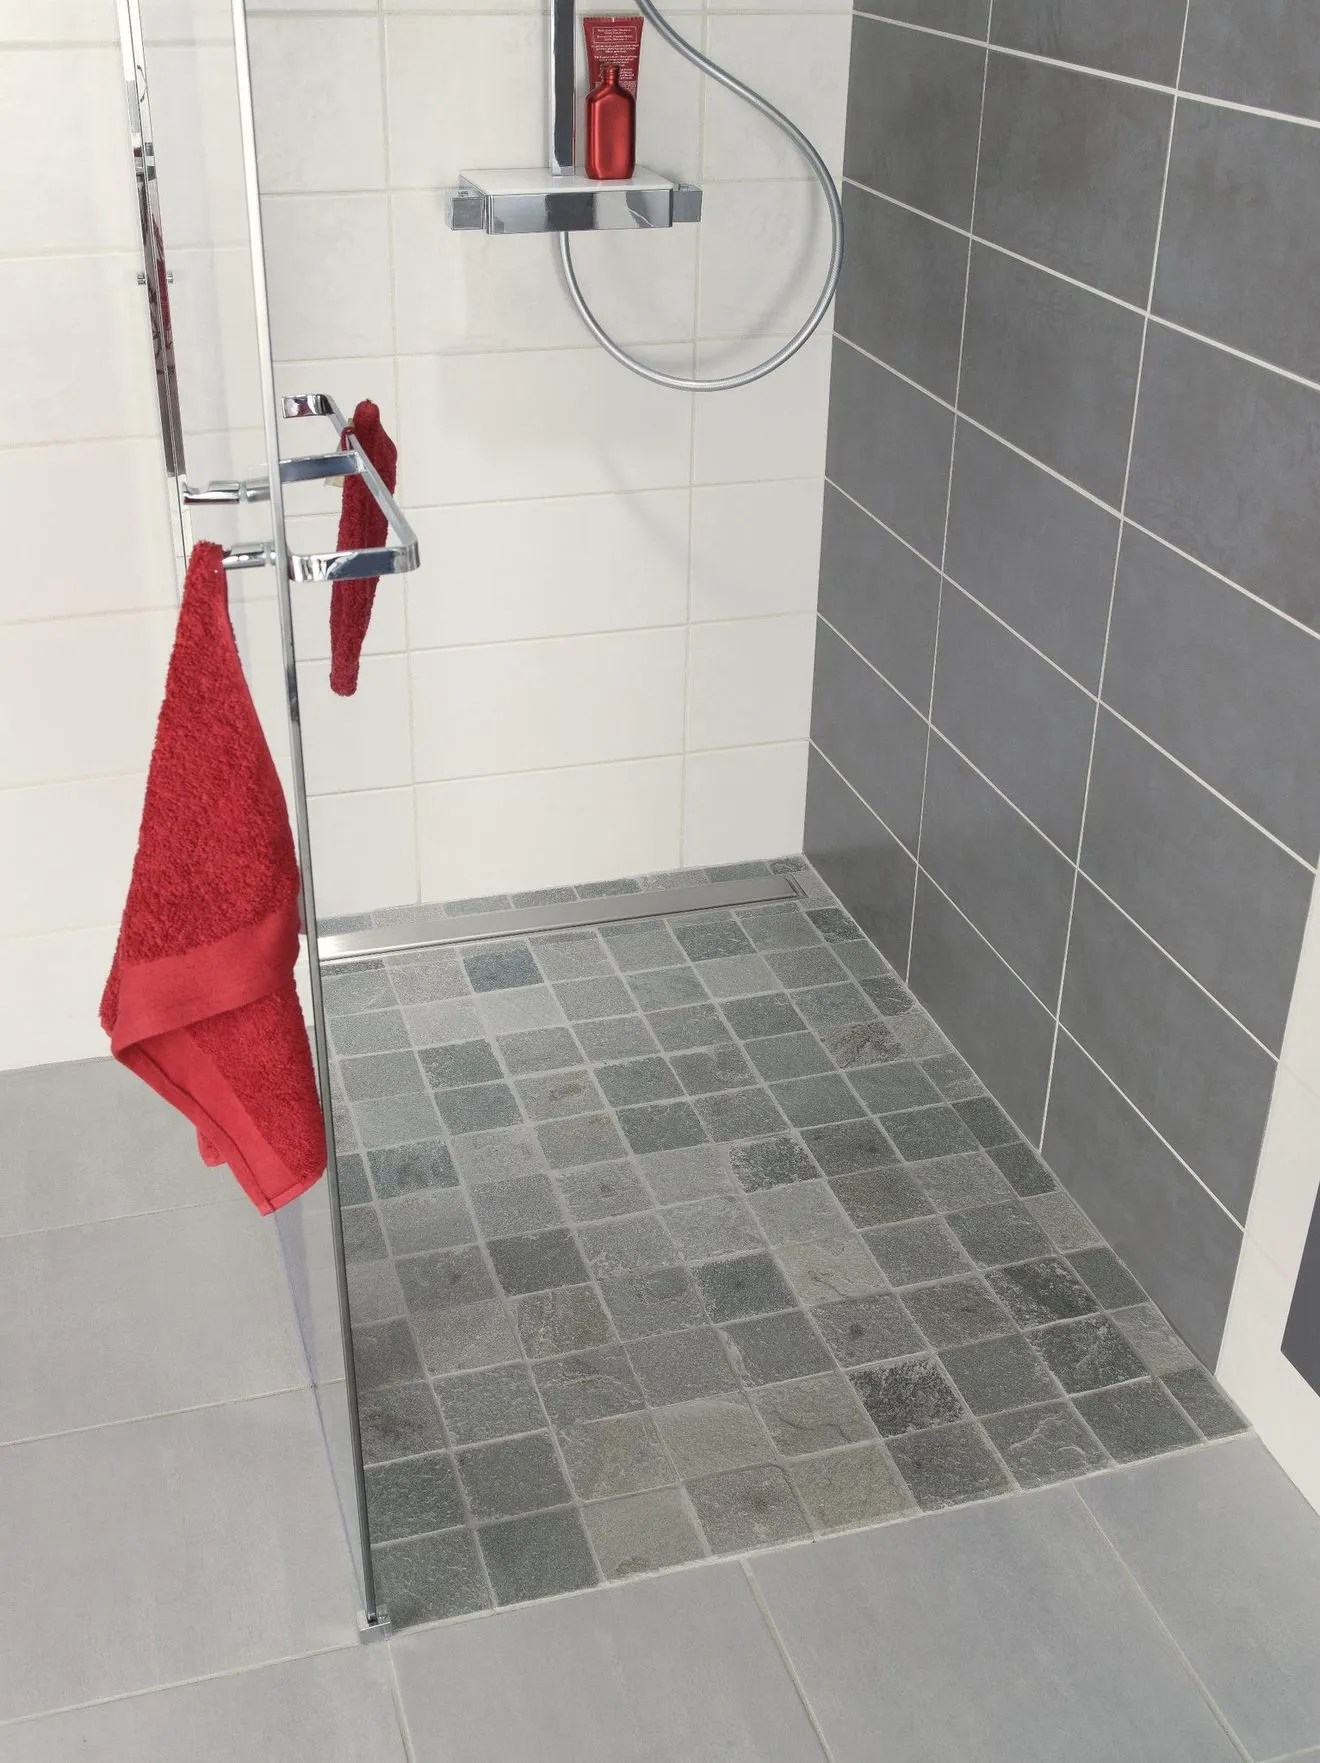 Carrelage Douche Revger Carrelage Sol Douche Italienne Antidérapant